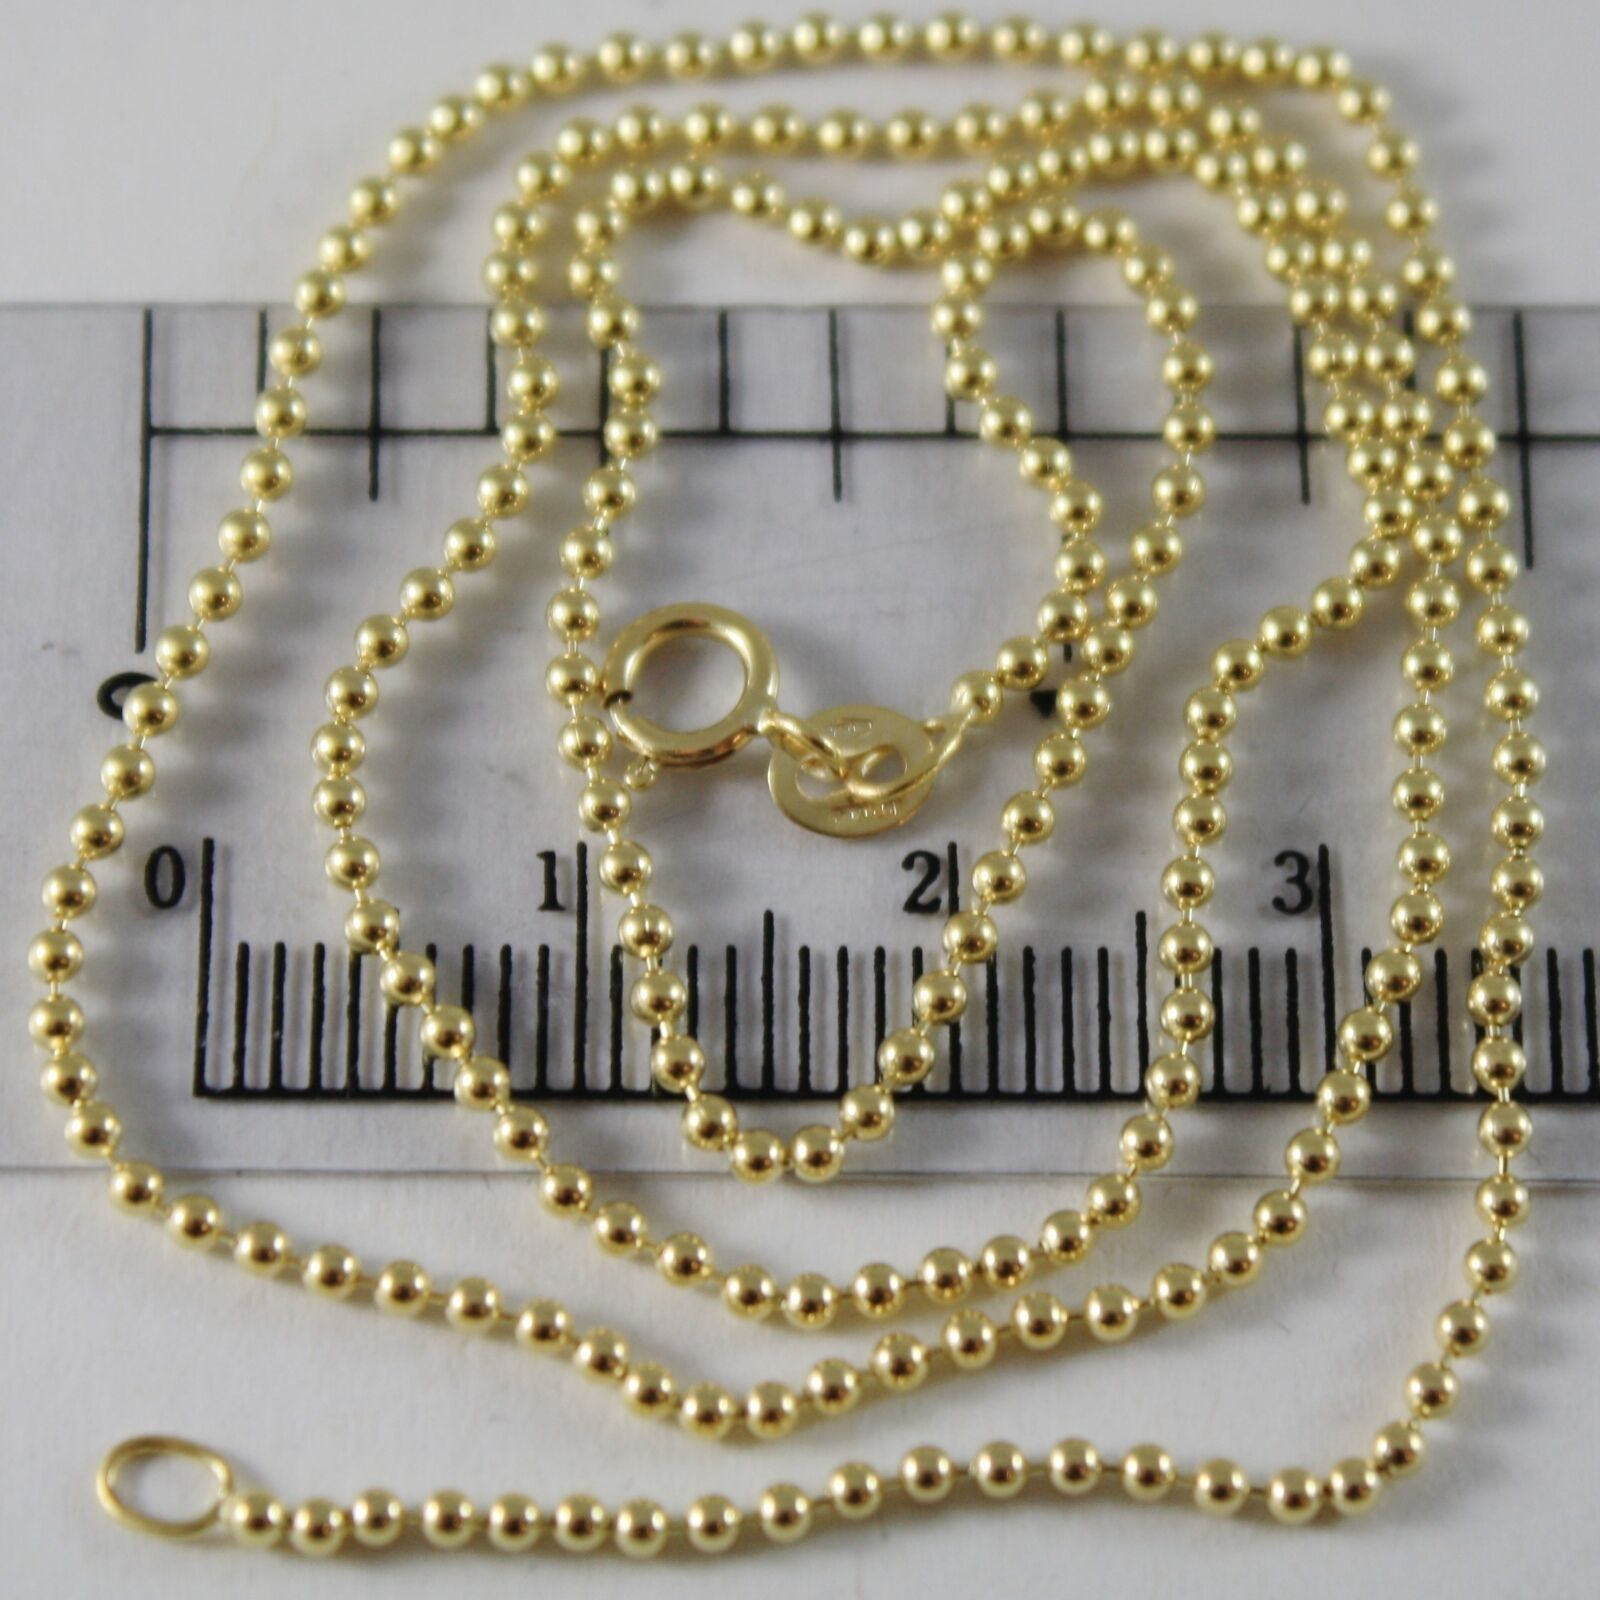 18K YELLOW GOLD CHAIN MINI BALLS BALL SPHERES 1.5 MM, 23.60 INCH, MADE IN ITALY